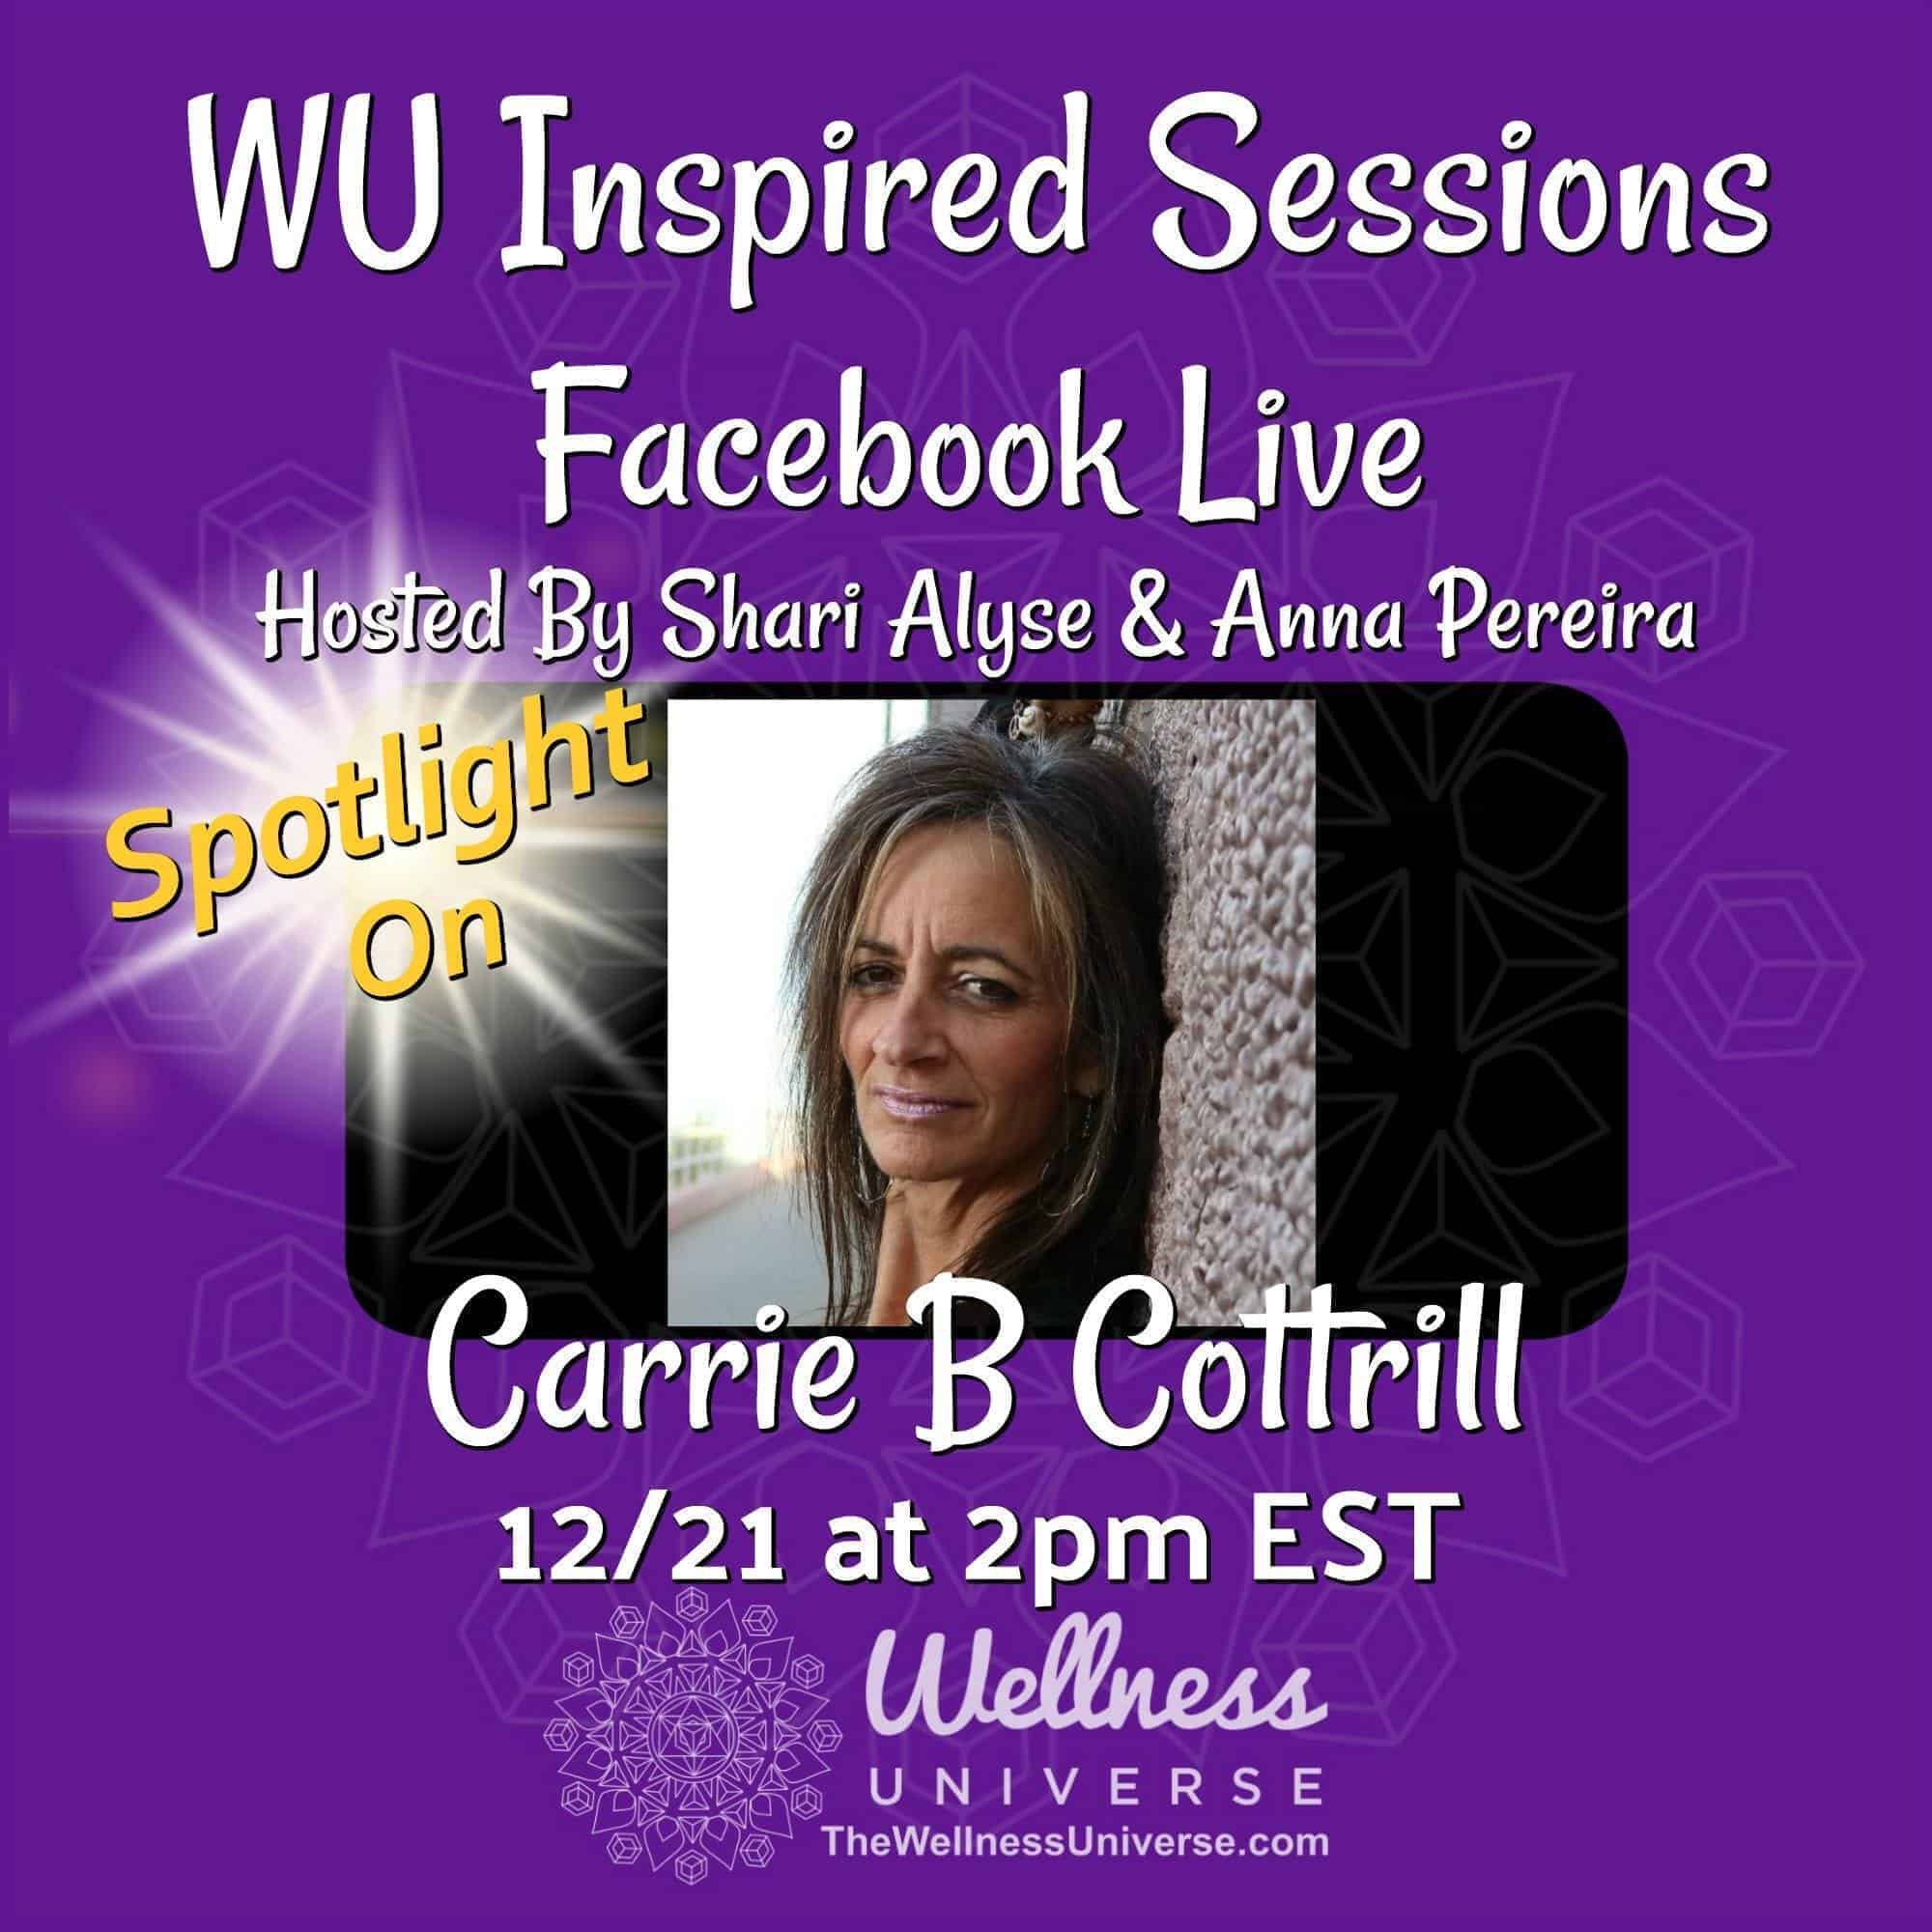 Set your reminder for tomorrow! Want to increase the creativity in your life? Come meet WU World-Cha